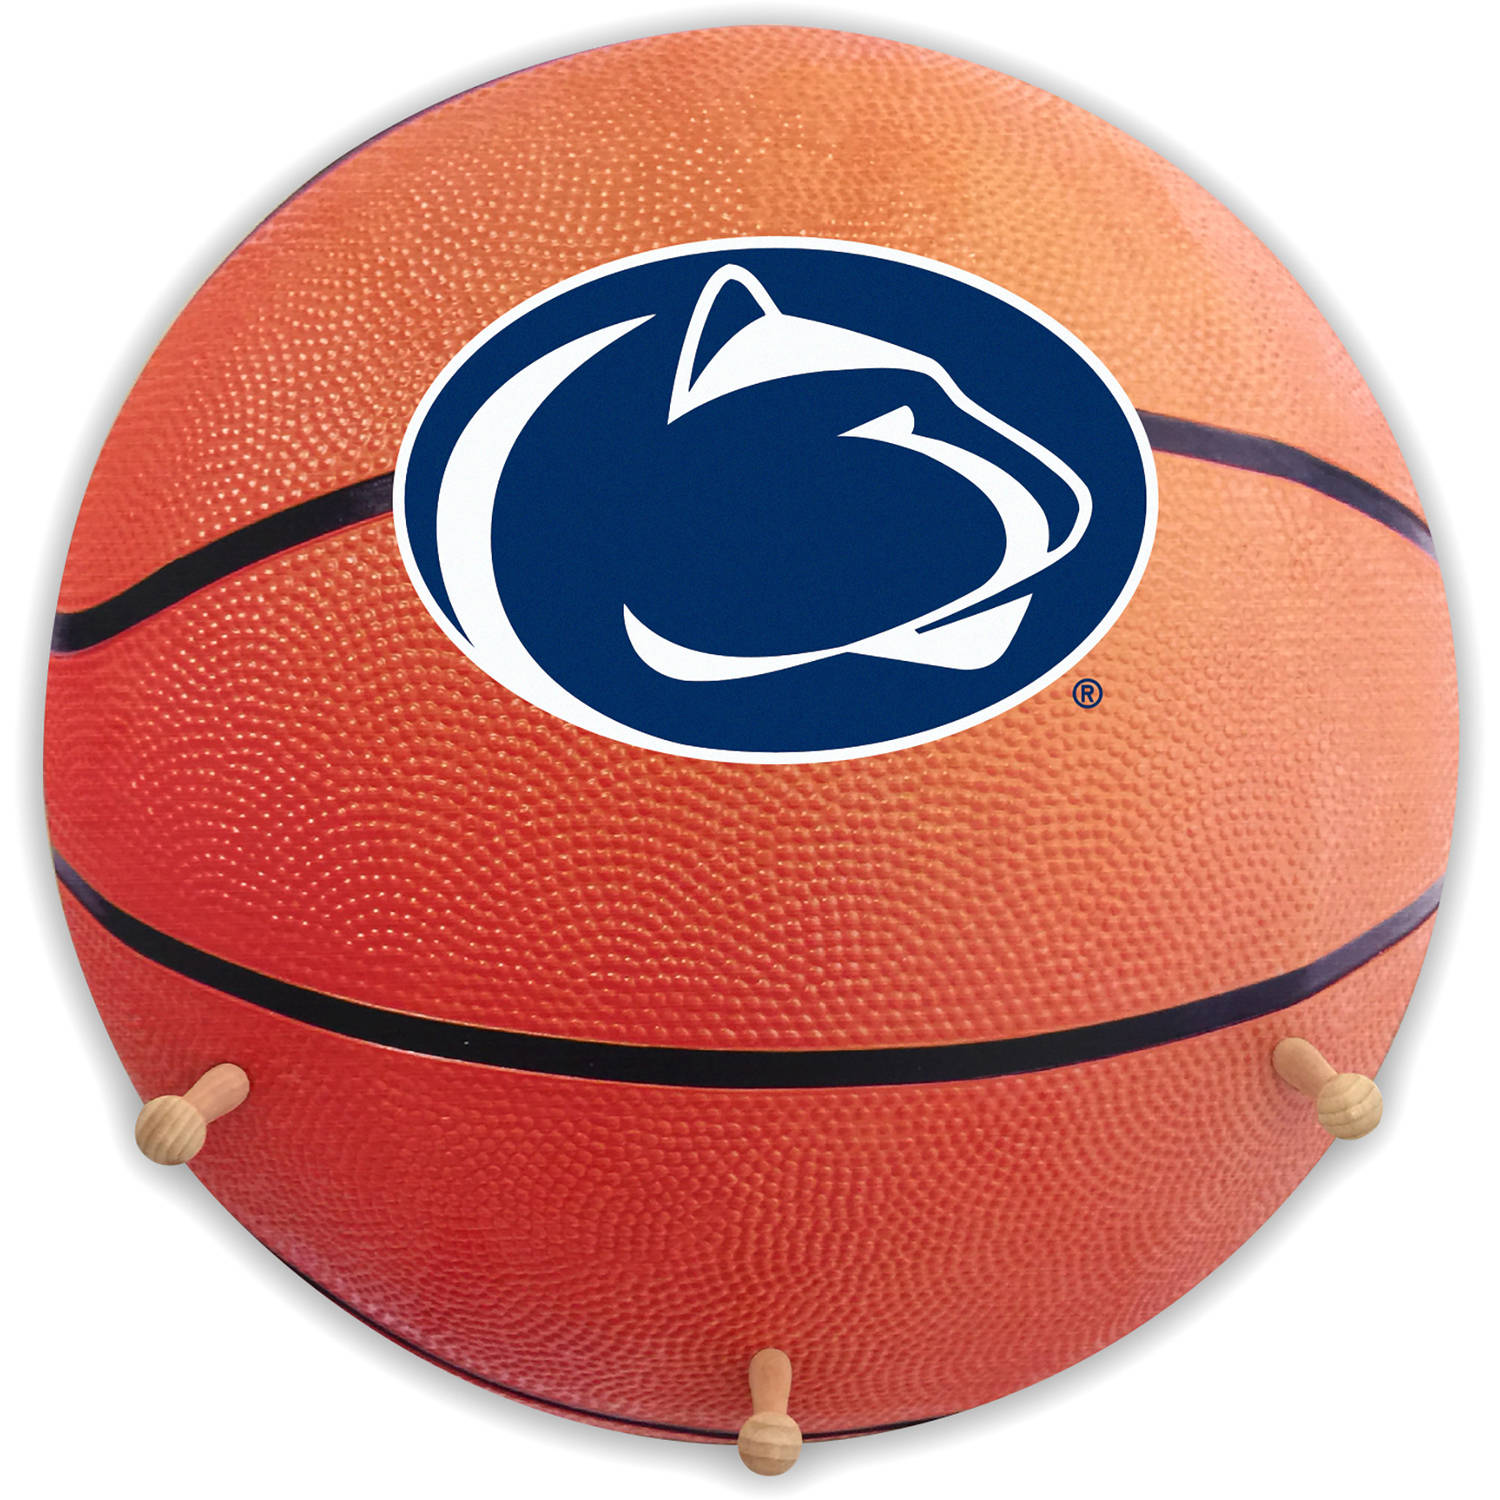 Penn State University Basketball Coat Rack